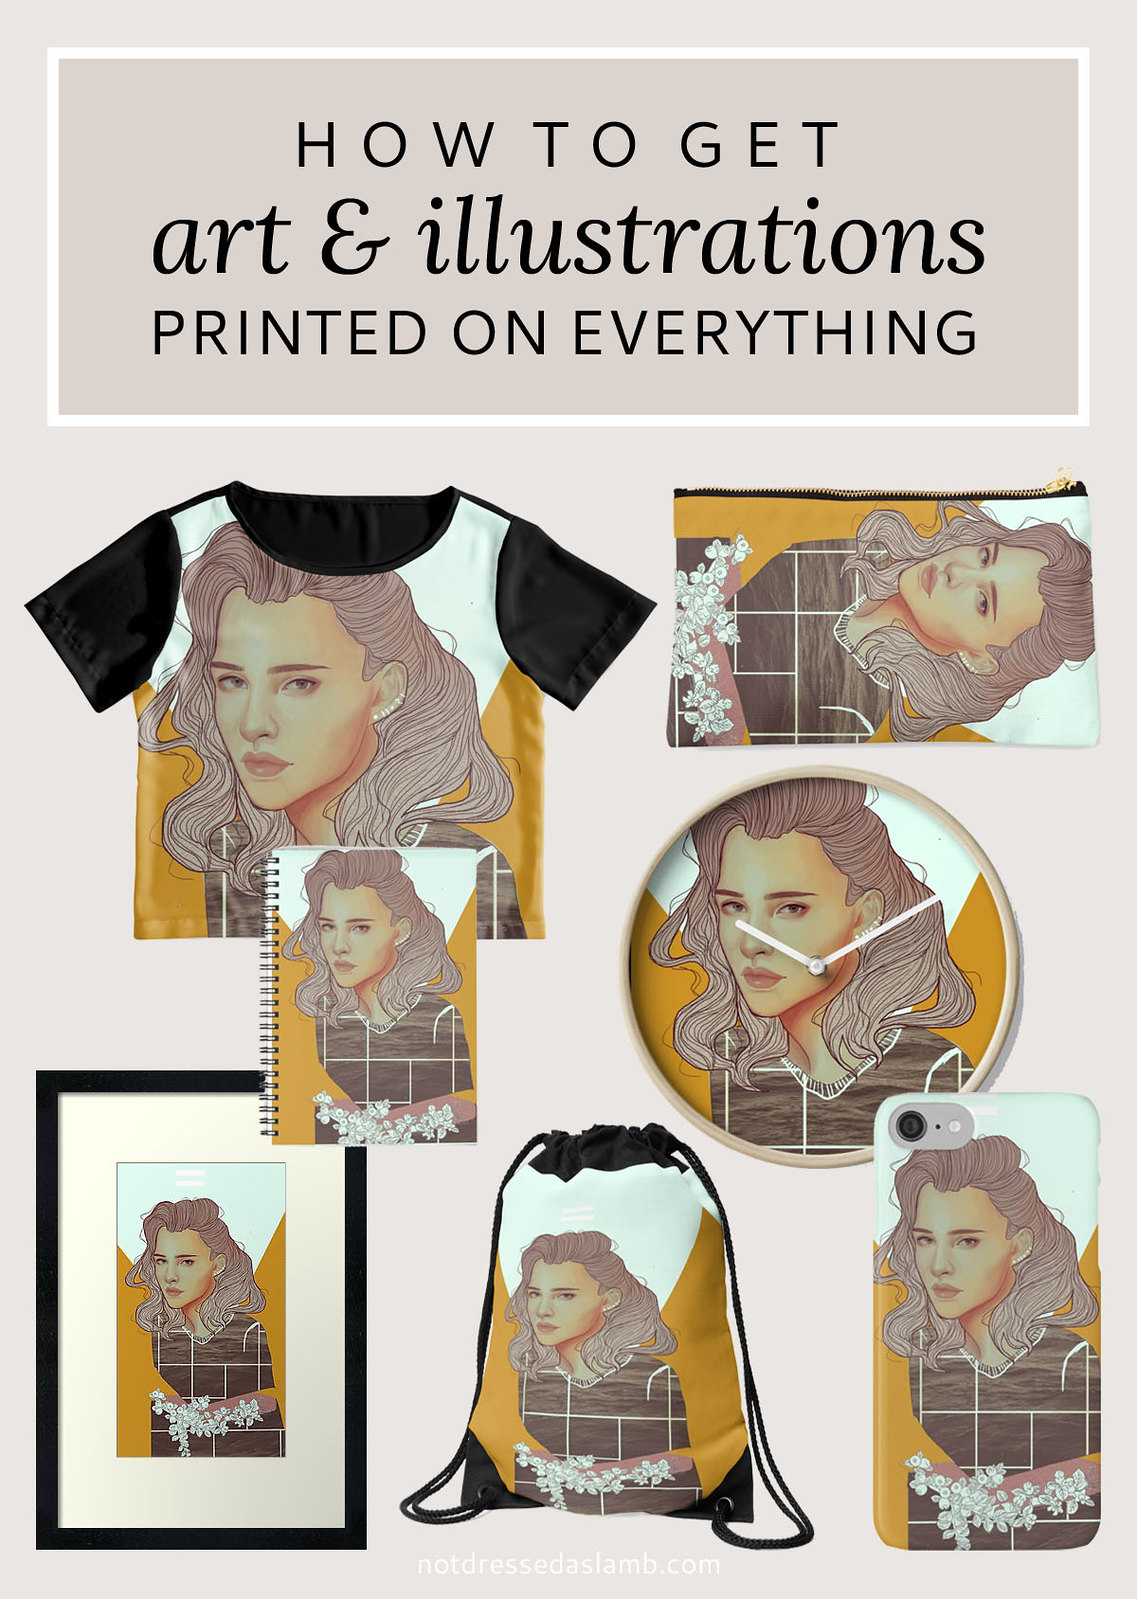 How to get art and illustrations printed on everything - redbubble.com | Not Dressed As Lamb